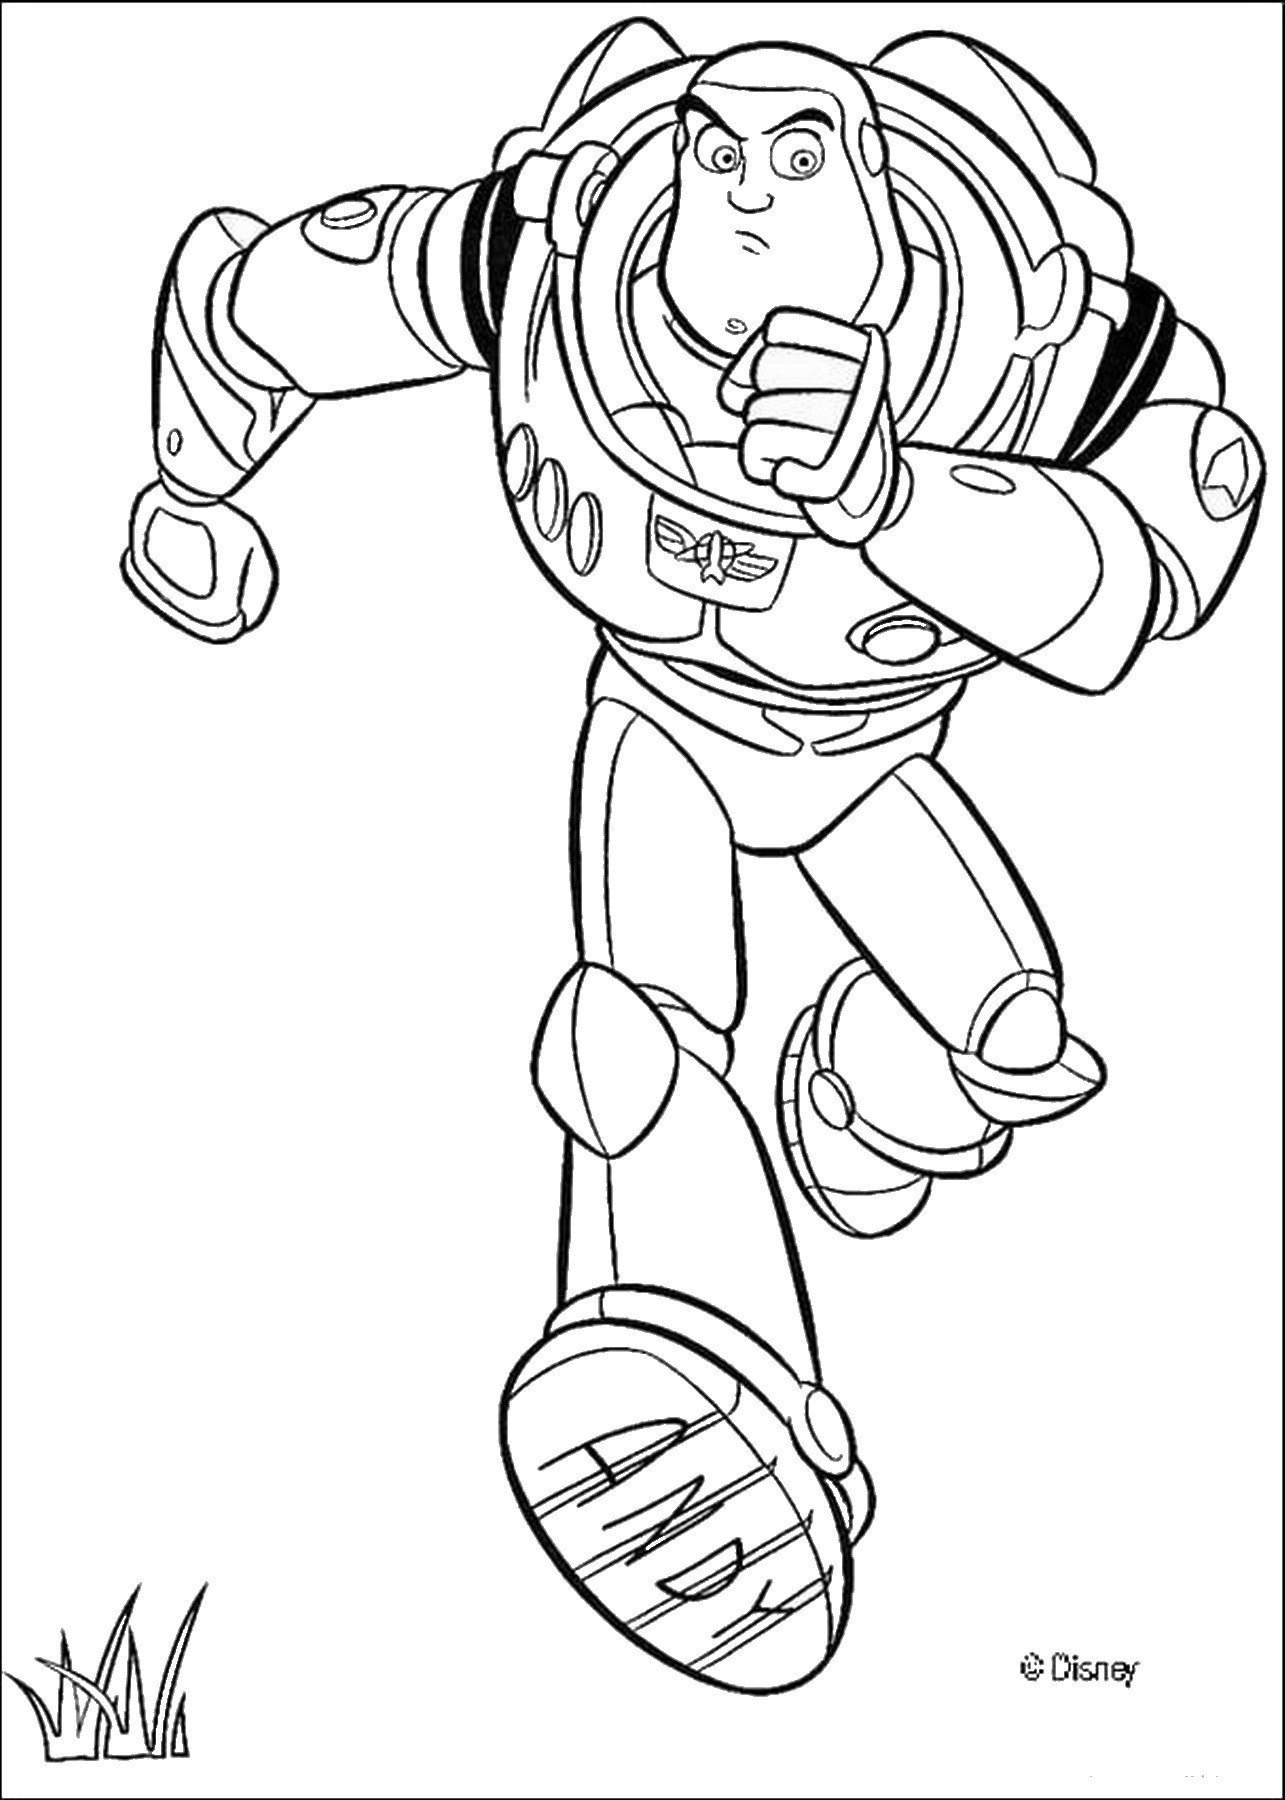 toy story coloring toy story coloring pages disneyclipscom story coloring toy